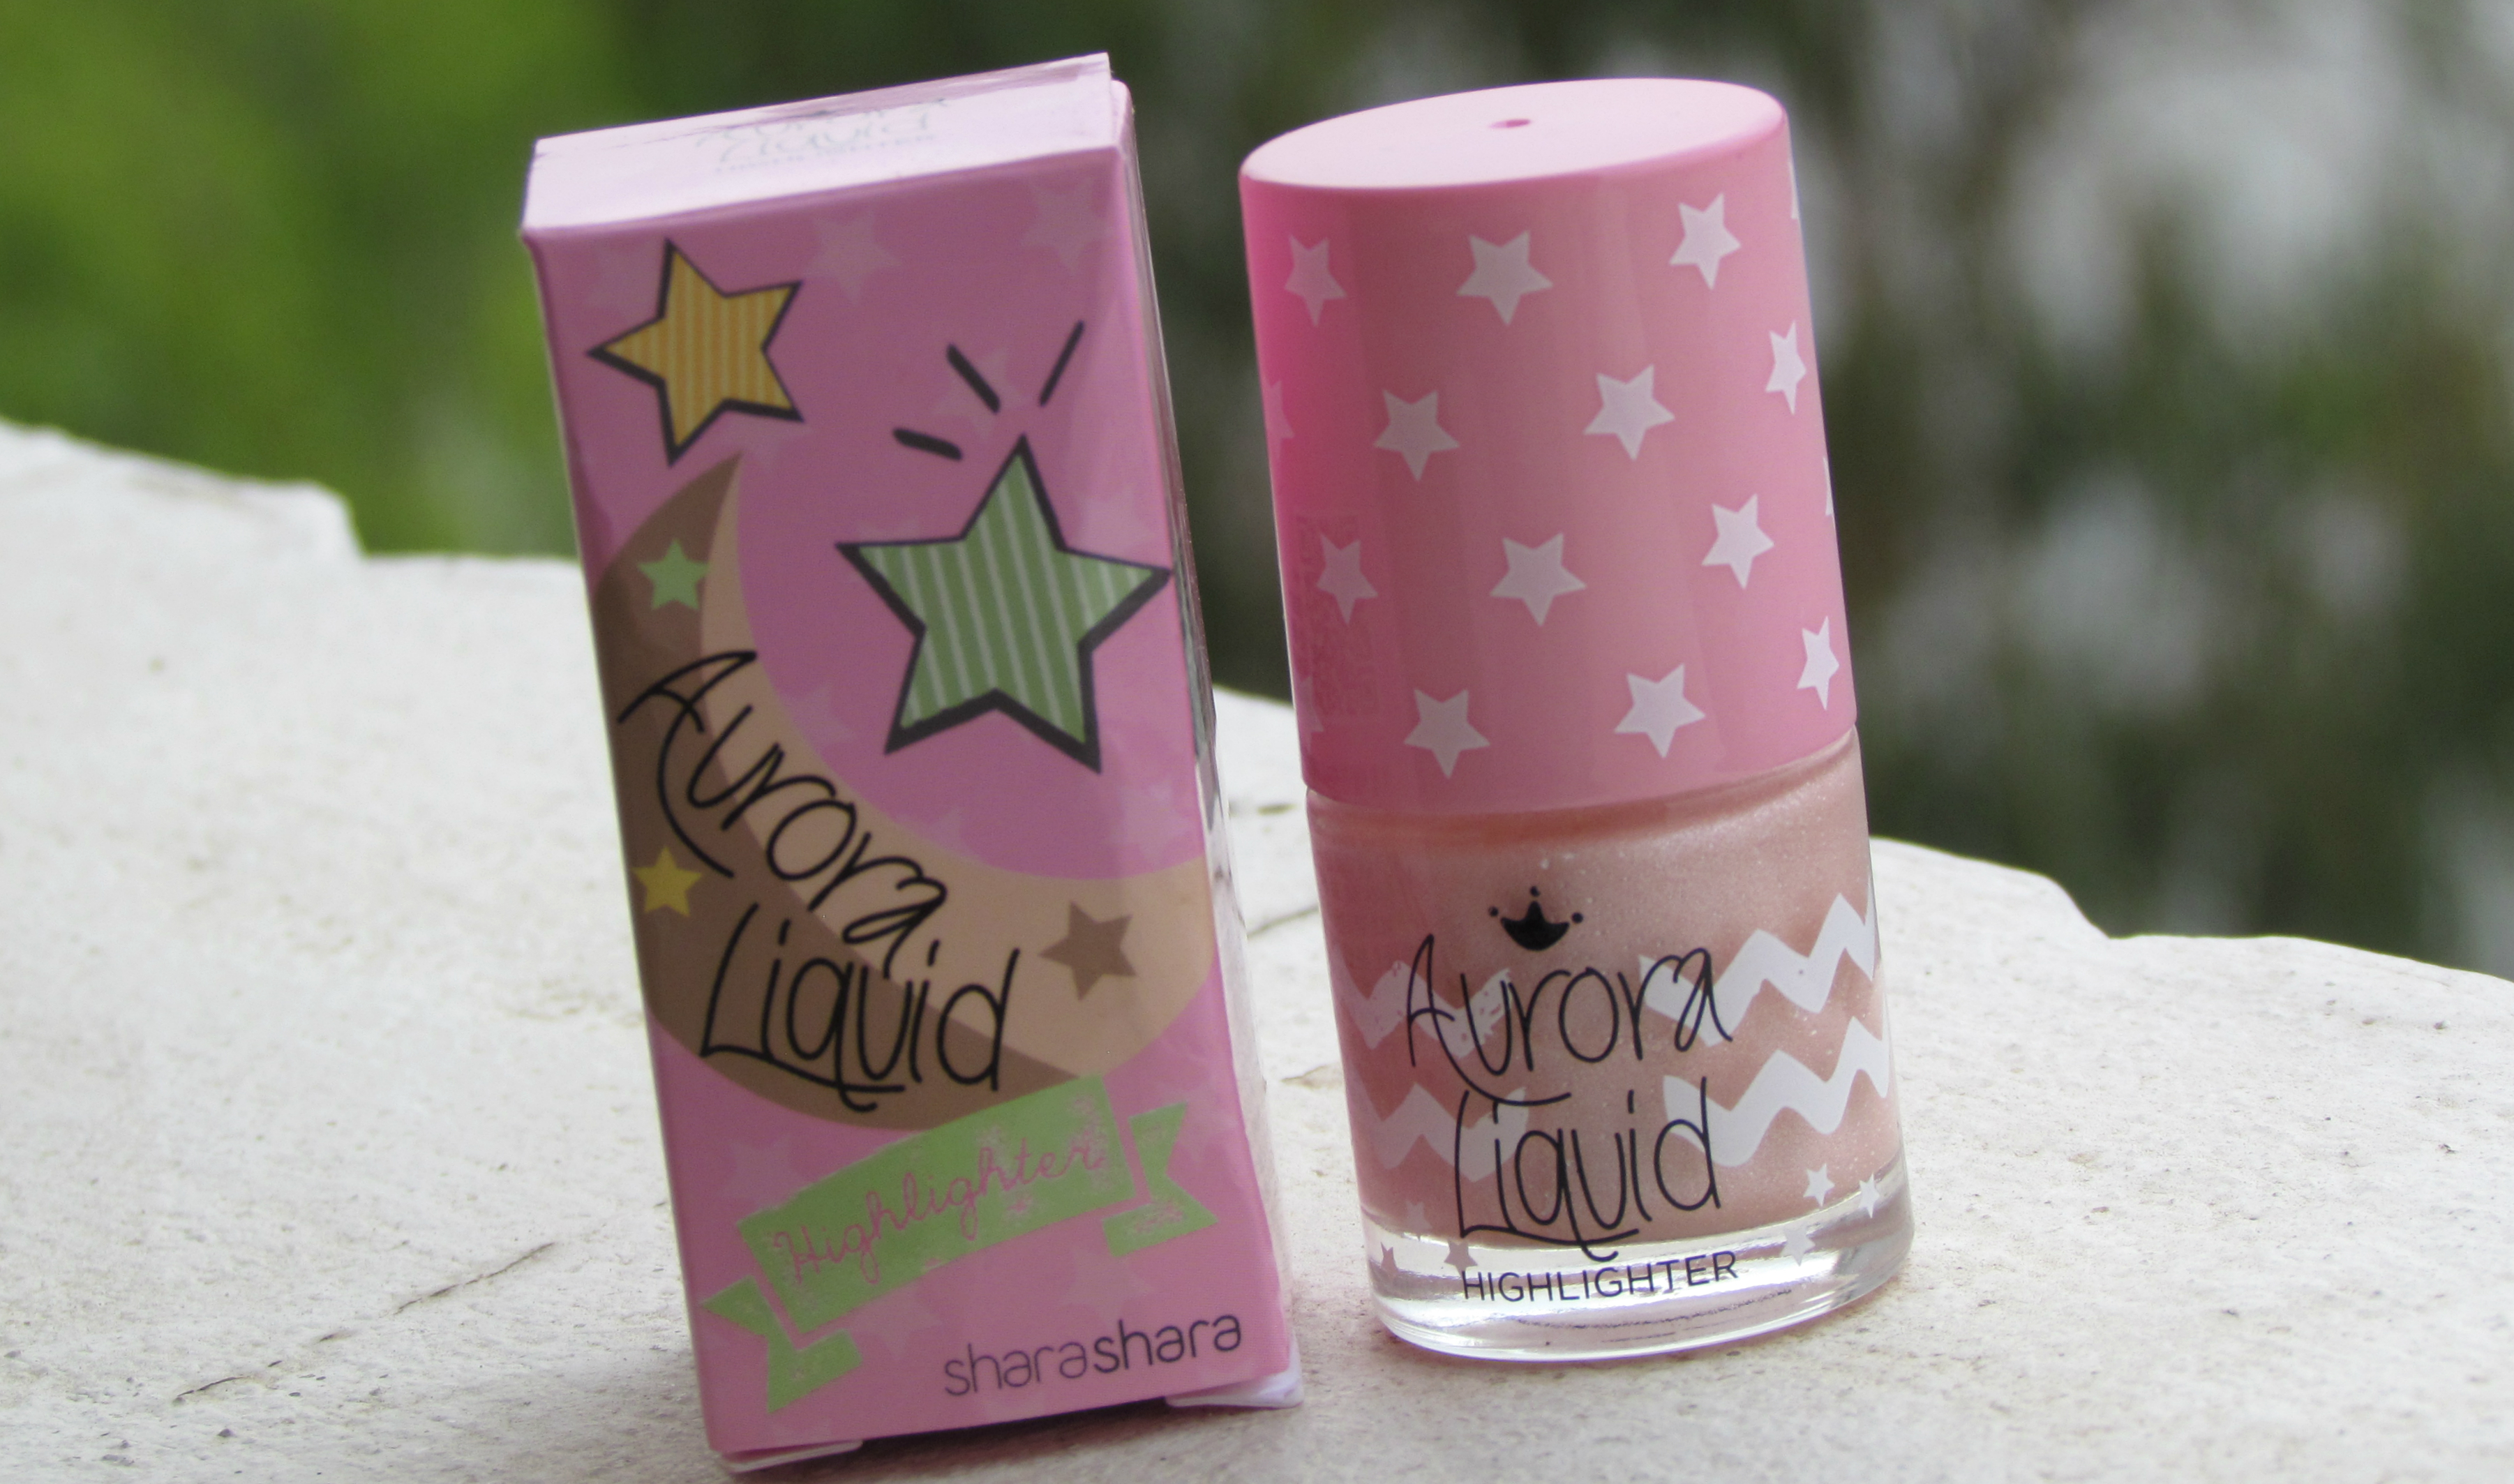 Shara Shara Aurora Liquid Highlighter : Shade # 1, Pink